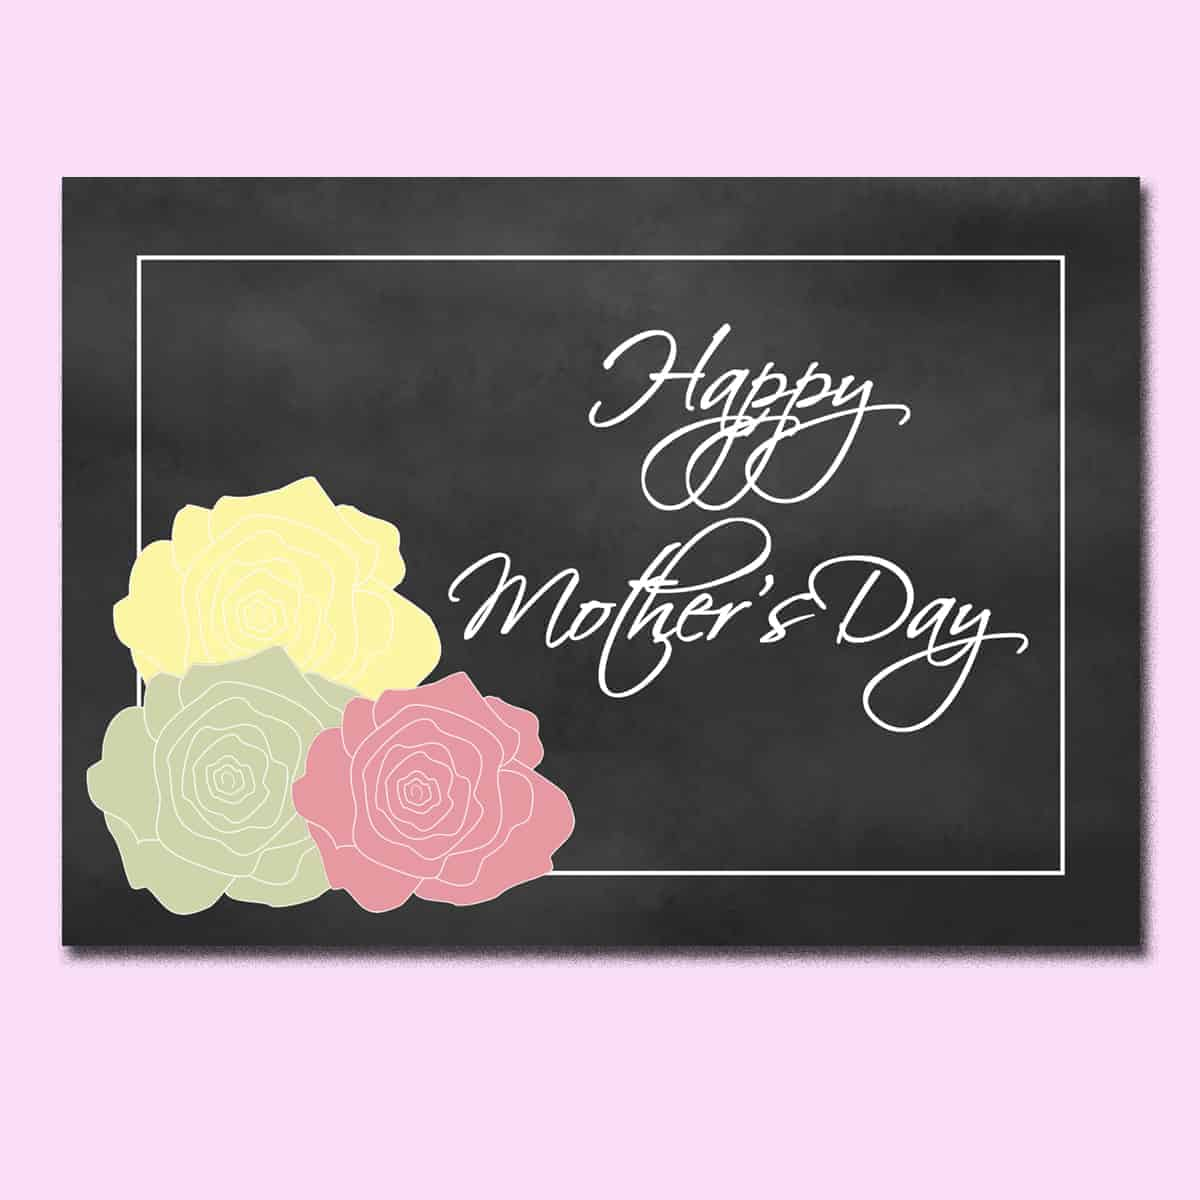 Free Printable Mother's Day Cards - Ilona's Passion